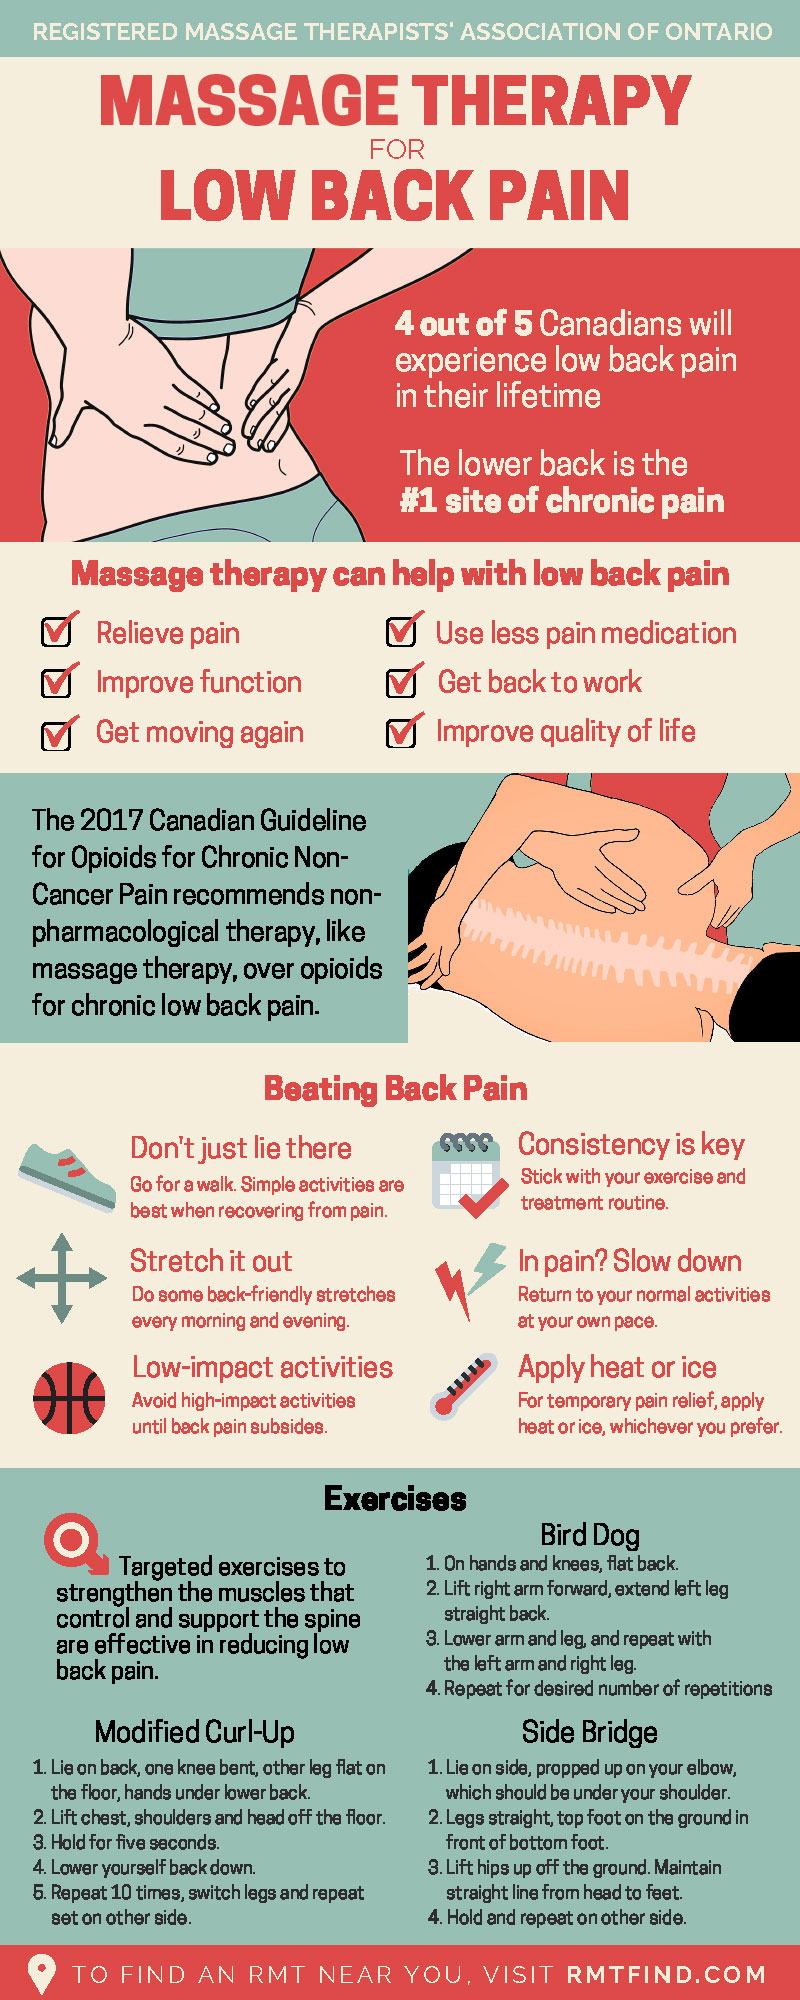 Massage Therapy for Low Back Pain